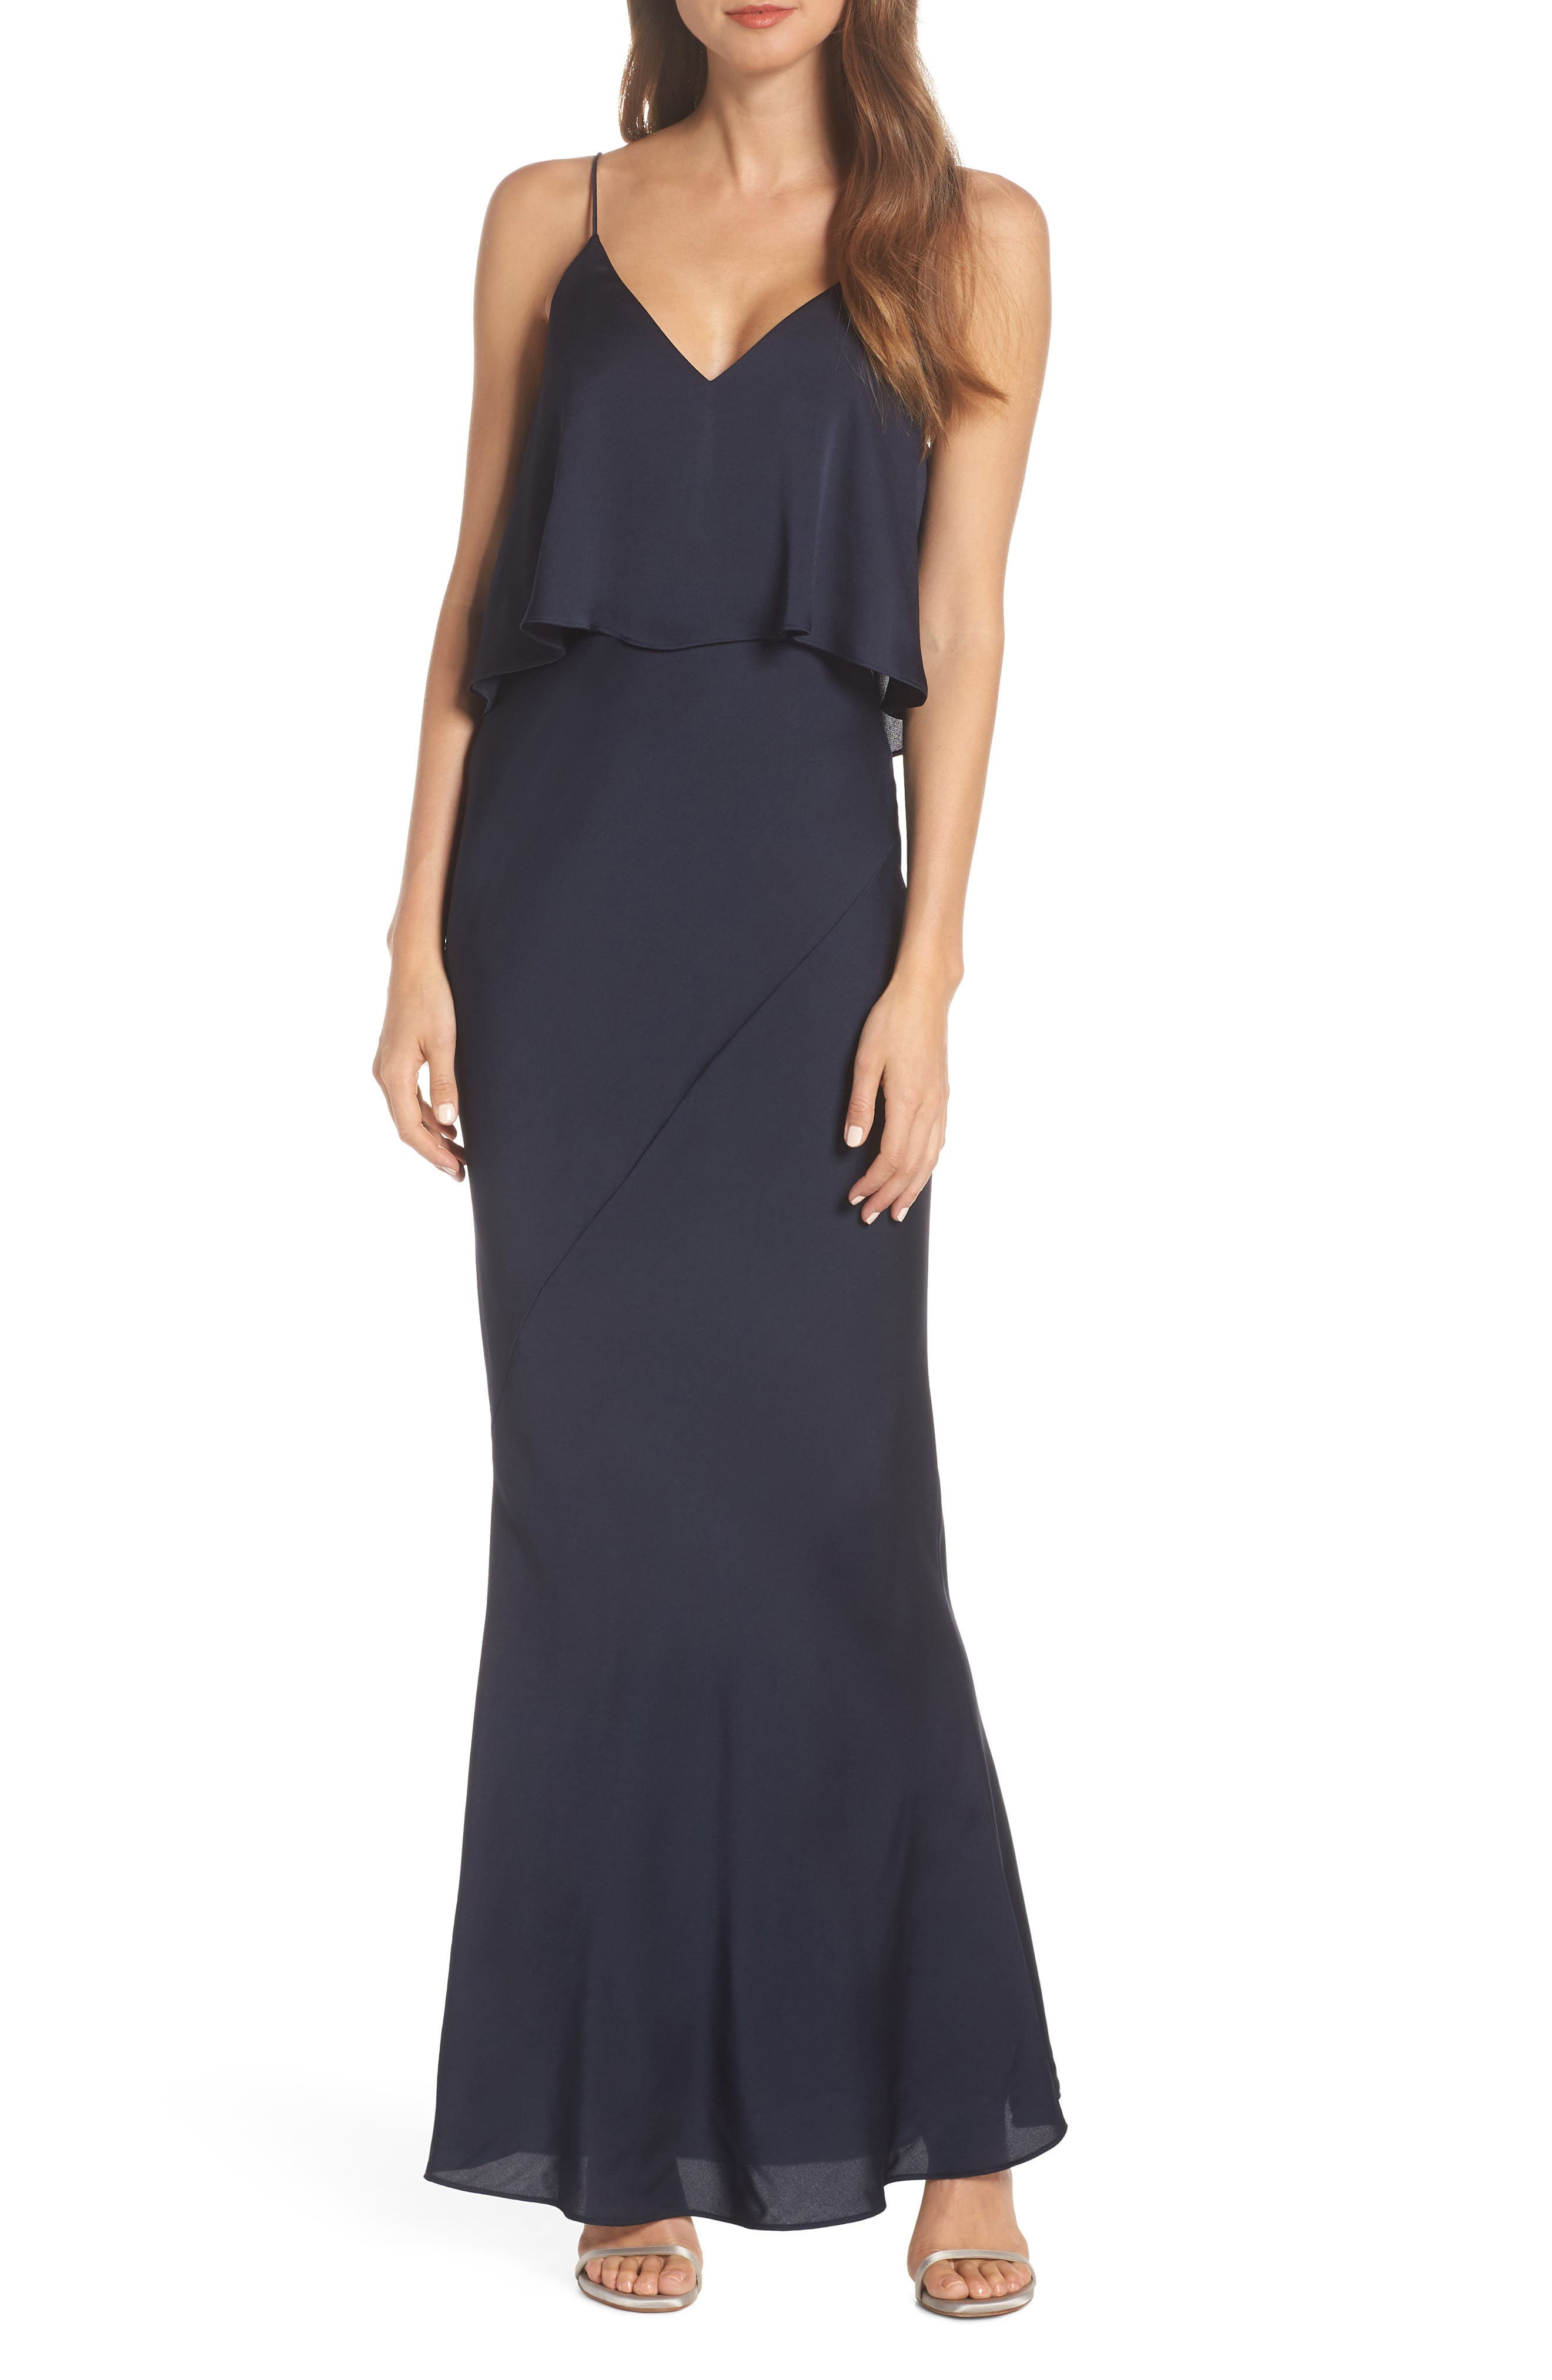 SHONA JOY Luxe Frilled Bodice Bias Cut Gown in Sapphire